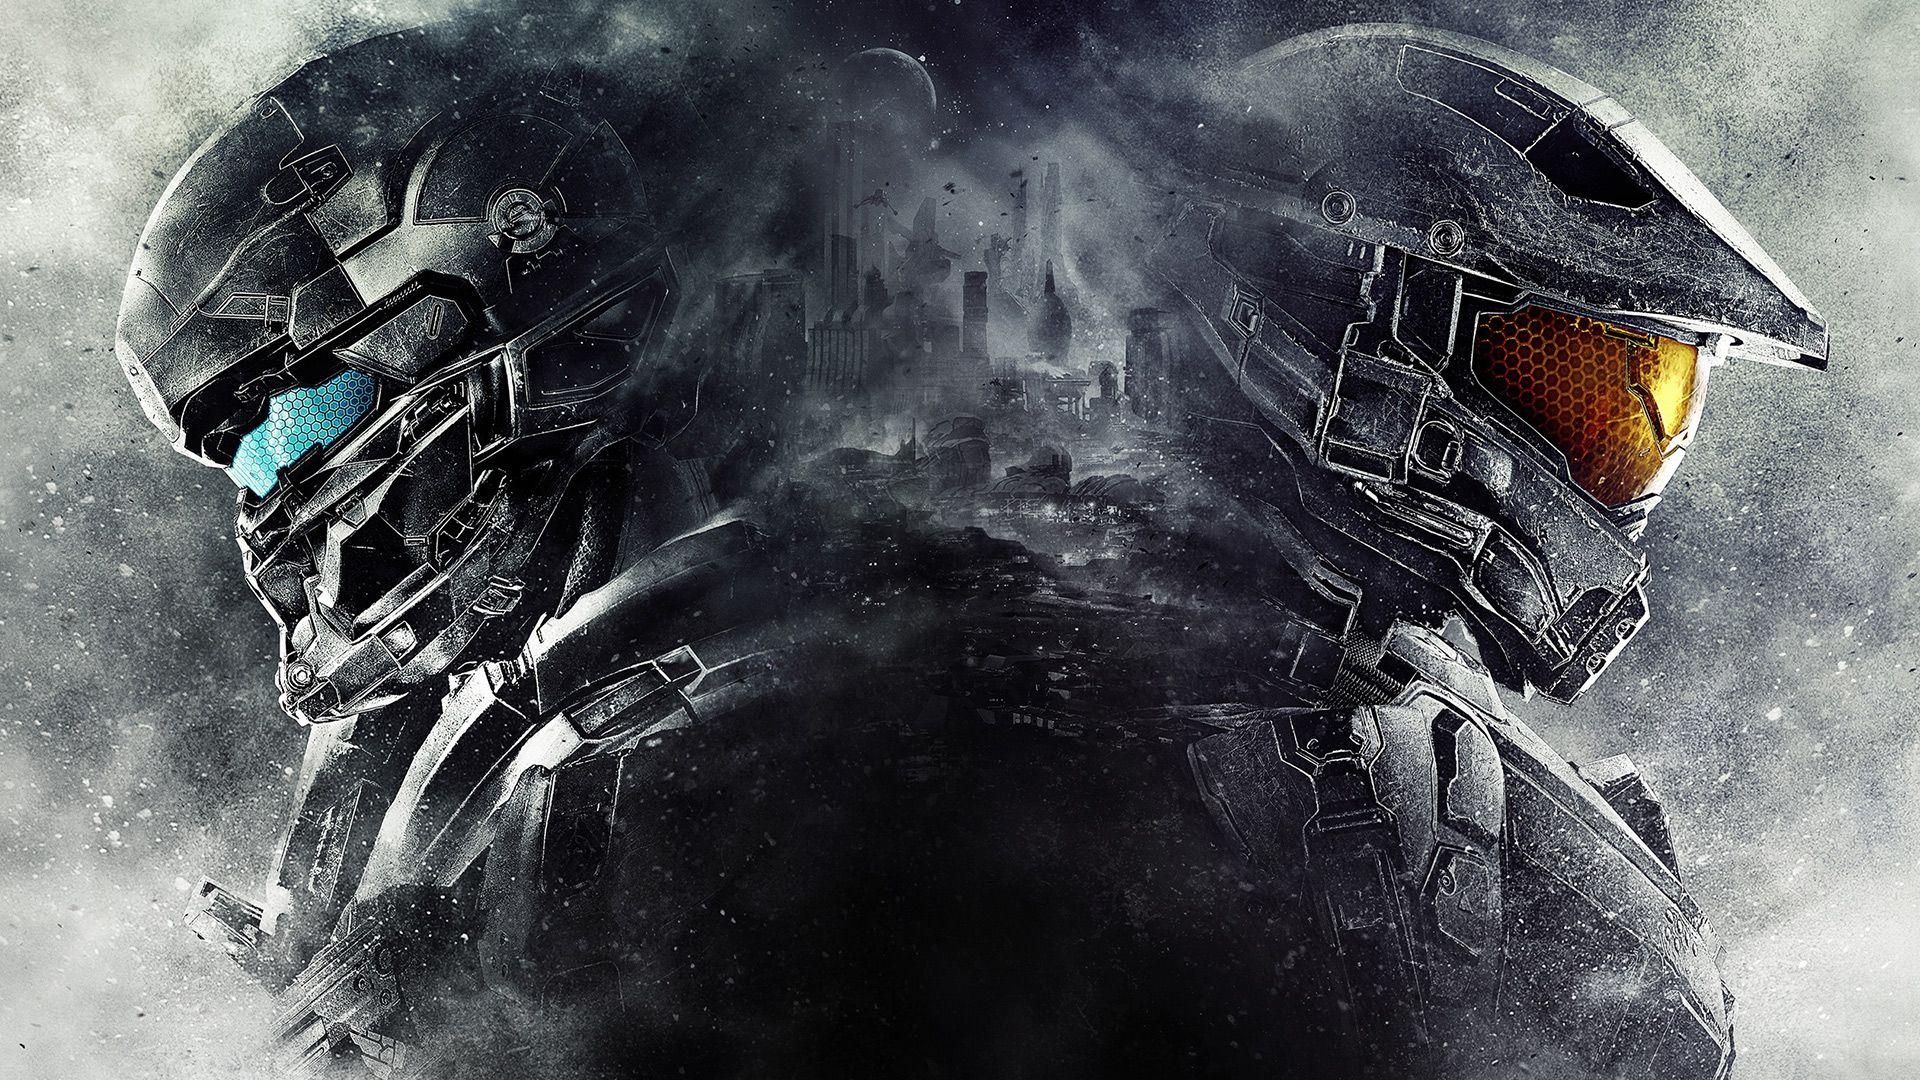 Animated Series Adapted From The Original Book, Halo The Fall Of Reach